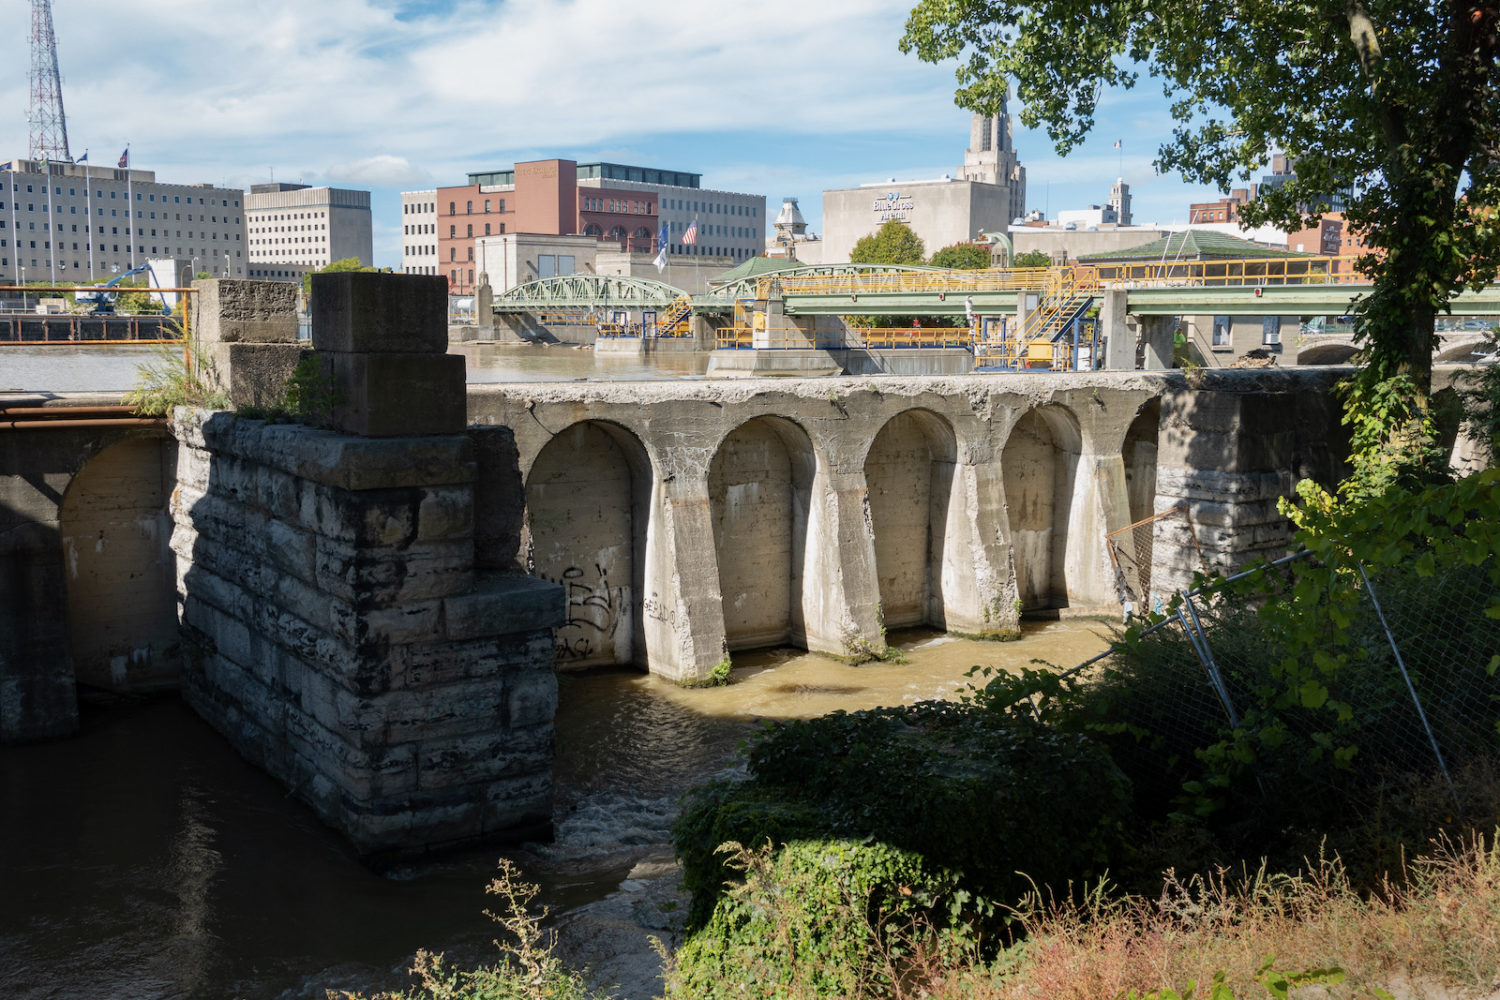 Old concrete wall holding back the Genesee River in downtown Rochester, New York